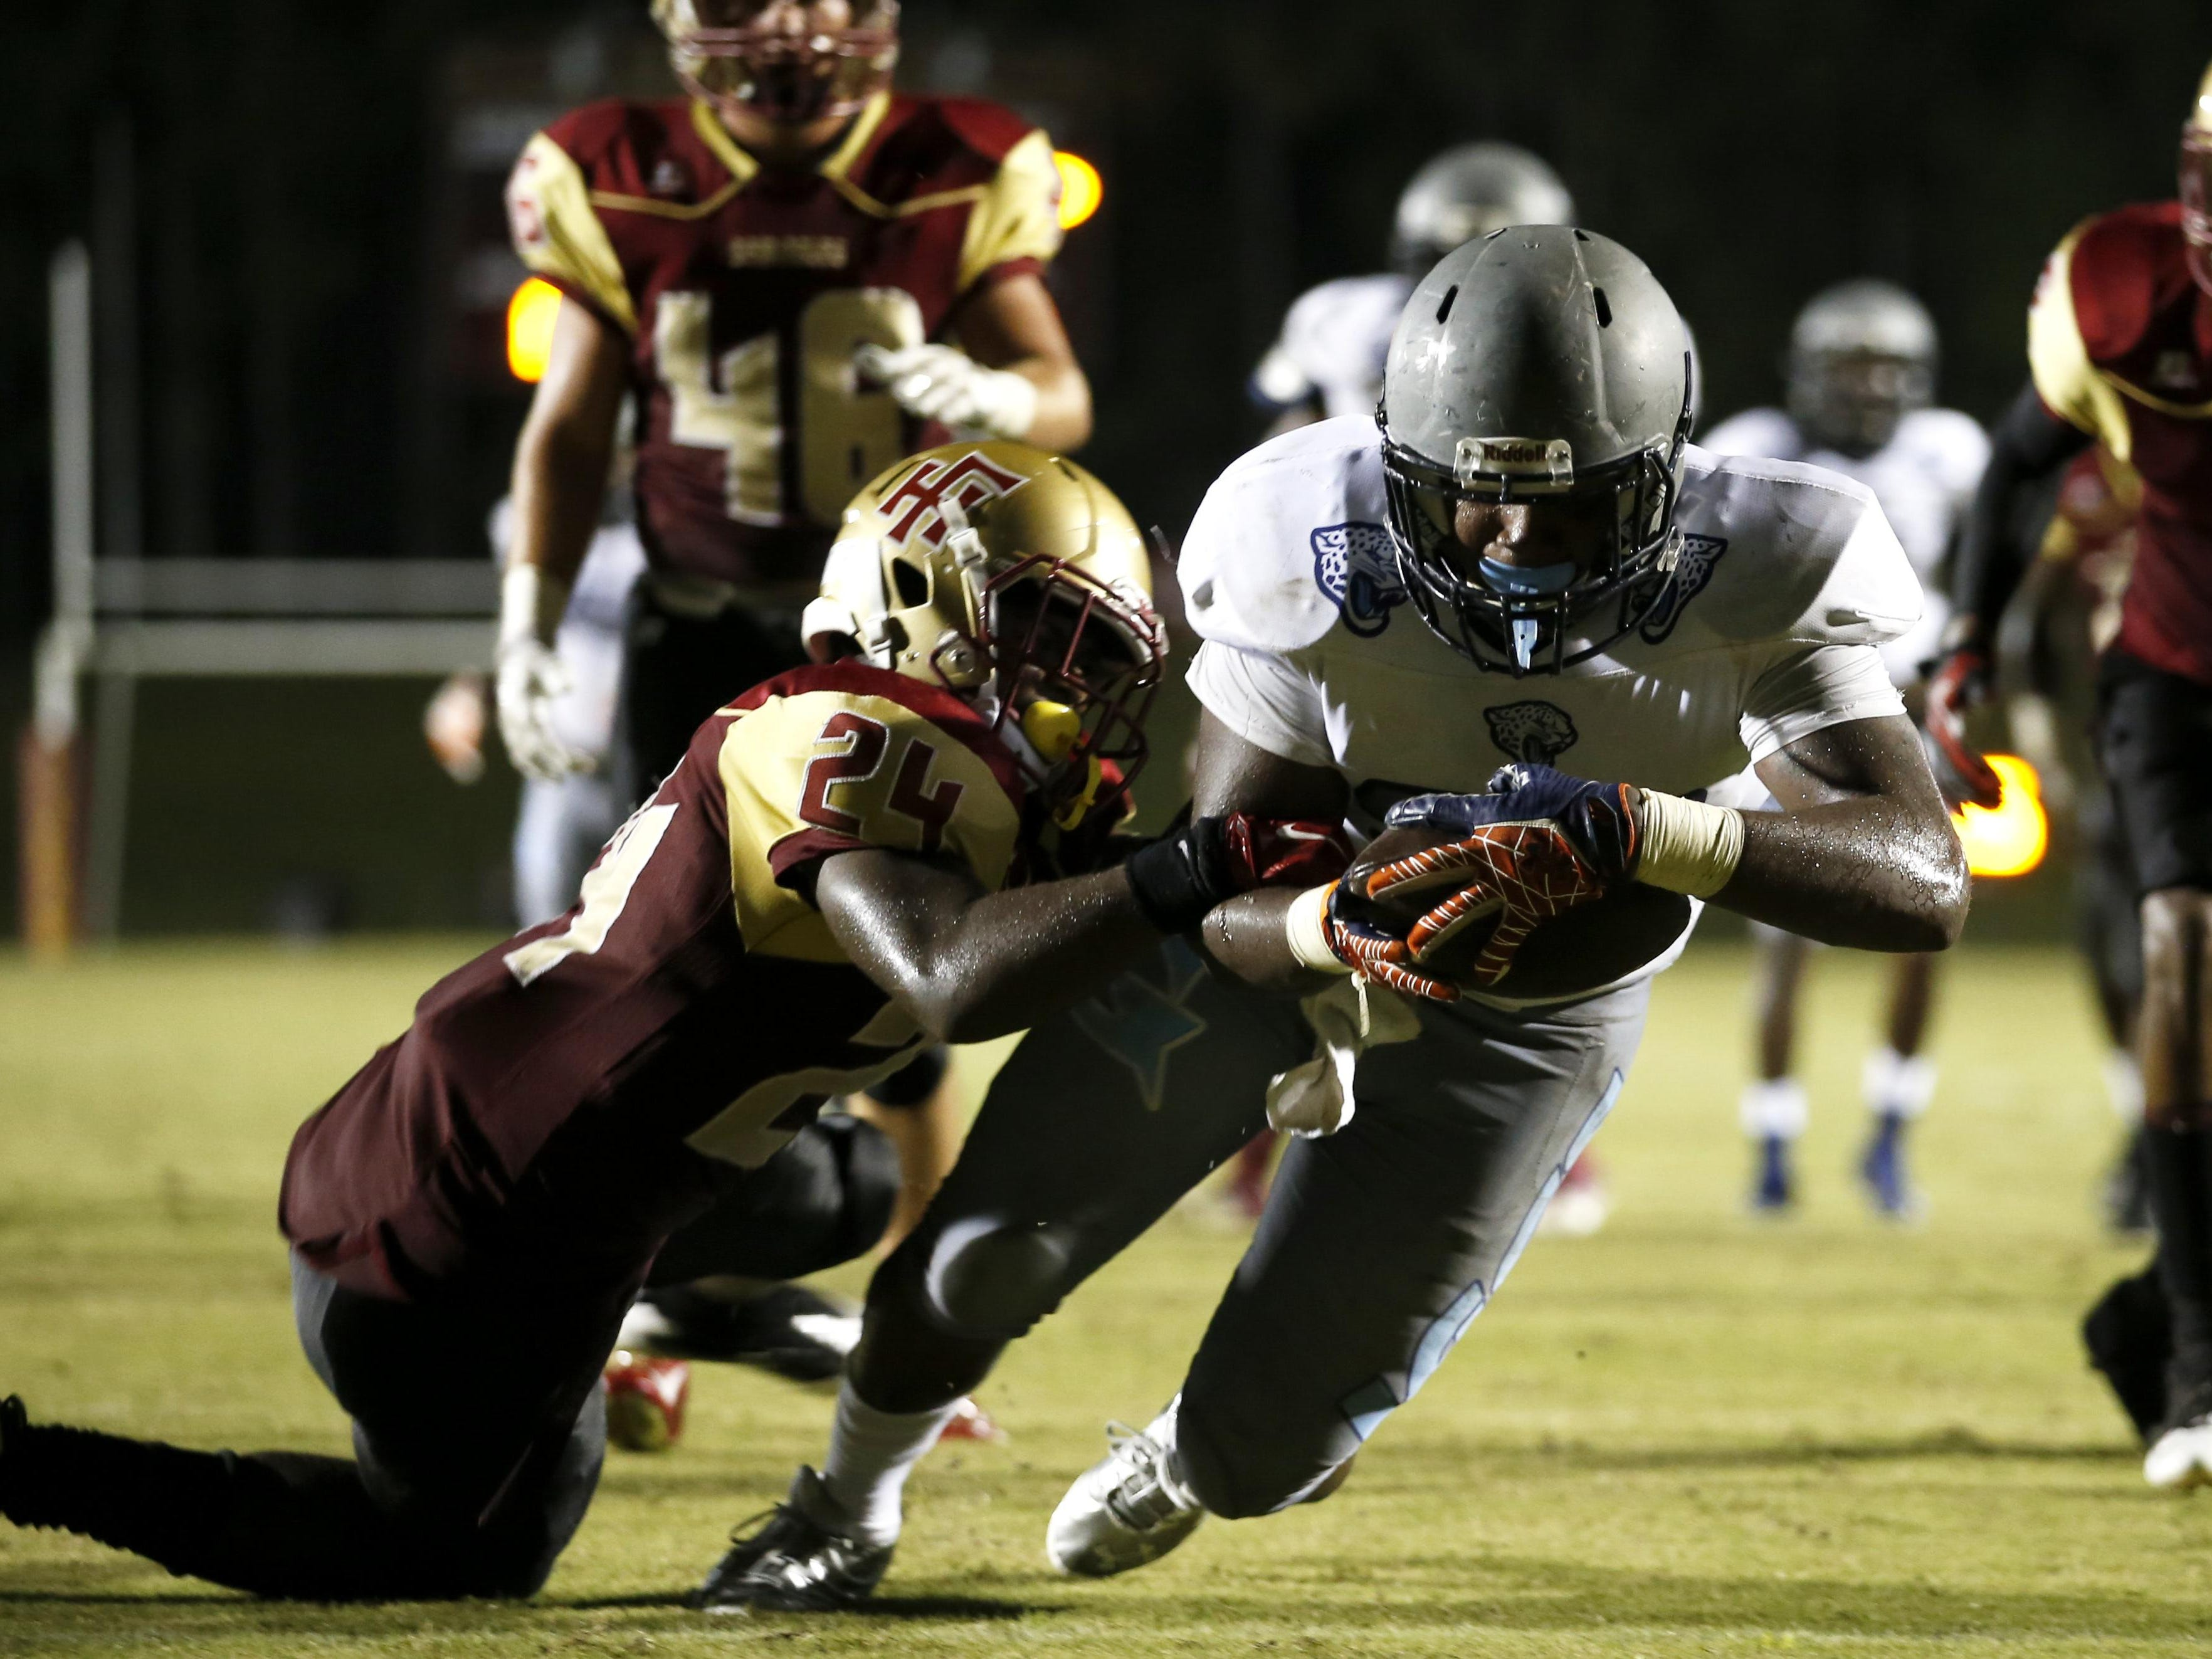 East Gadsden's DeShade Holton drags Florida High's Carlos Williams into the endzone for a touchdown during their game at Florida High on Friday.